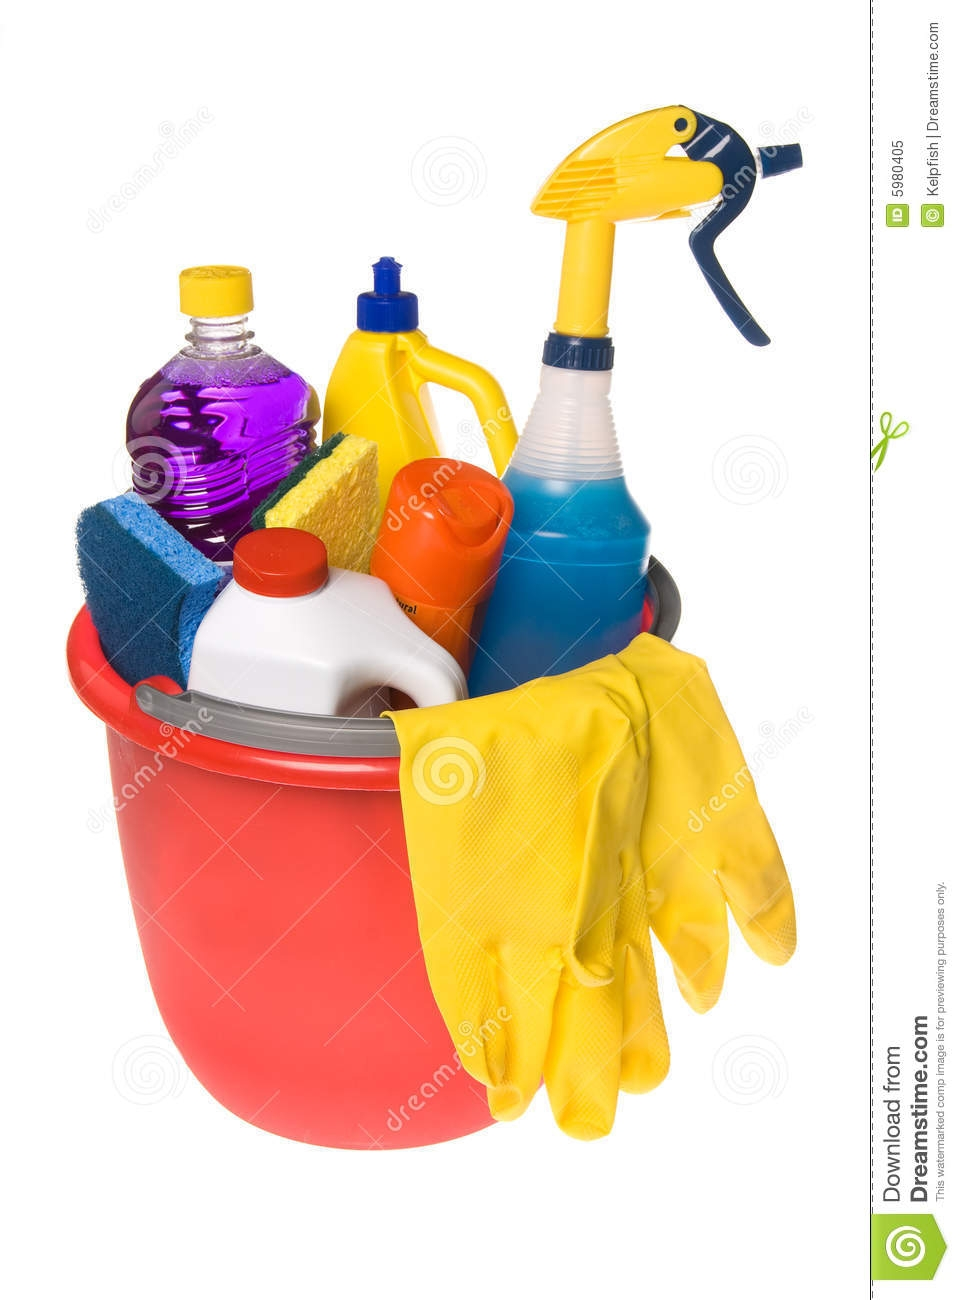 Interior Designs clipart cleaning bucket Cleaning Of As The :